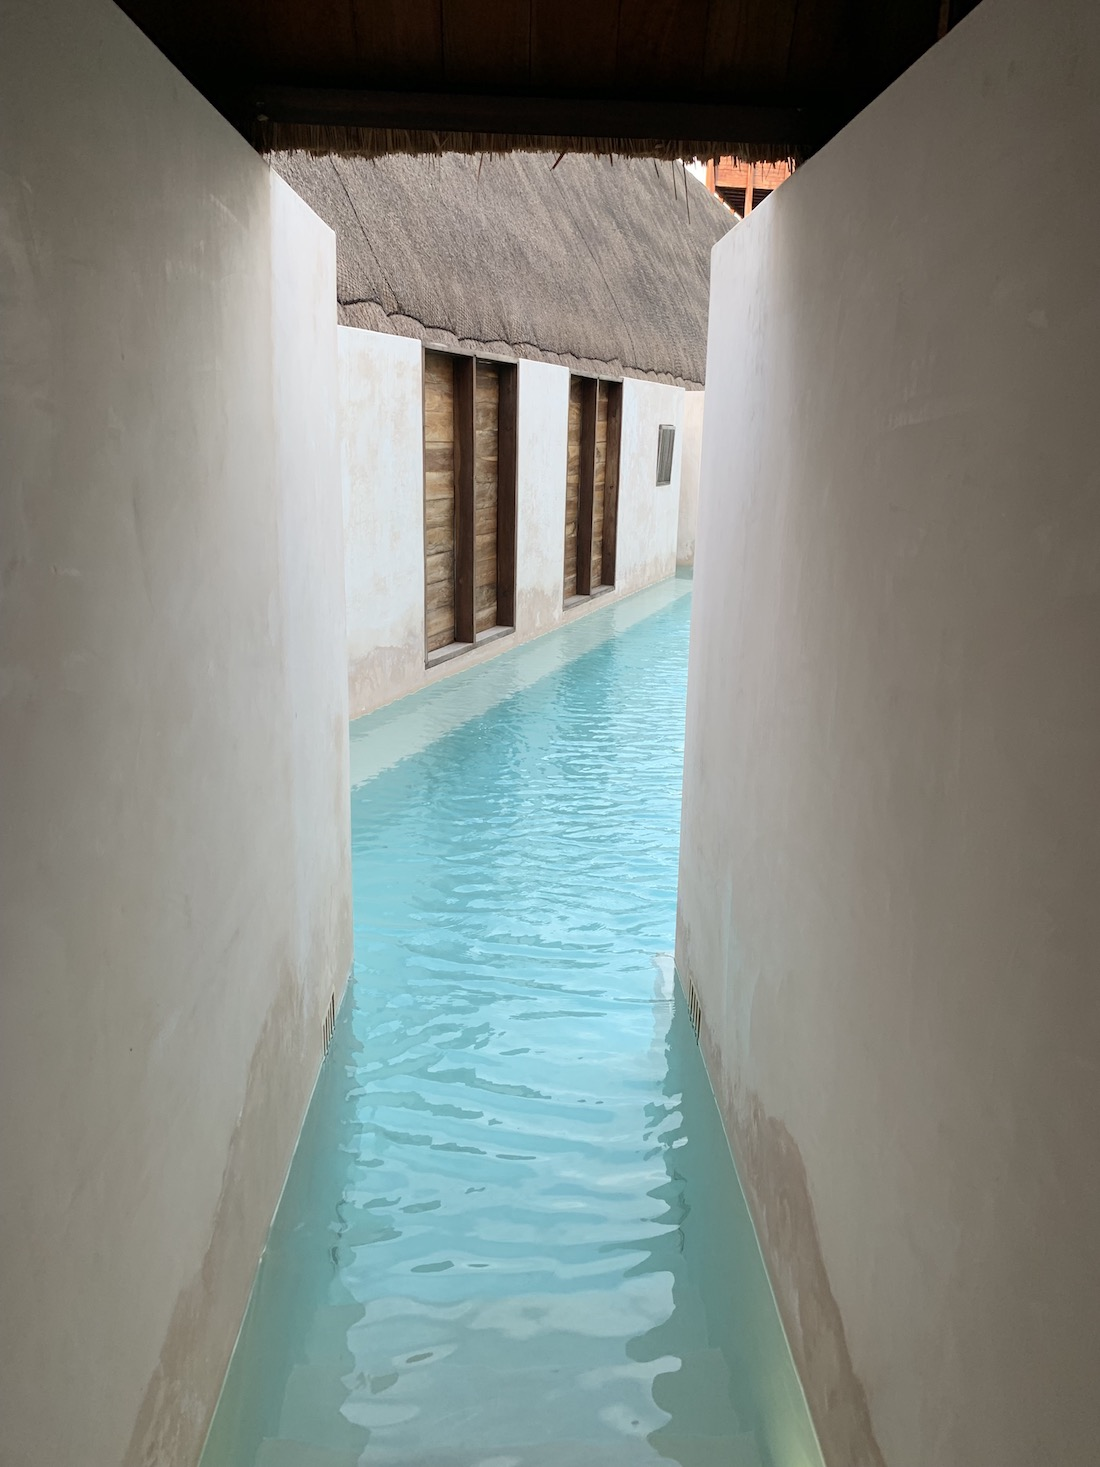 Isla Holbox rooms and pool water